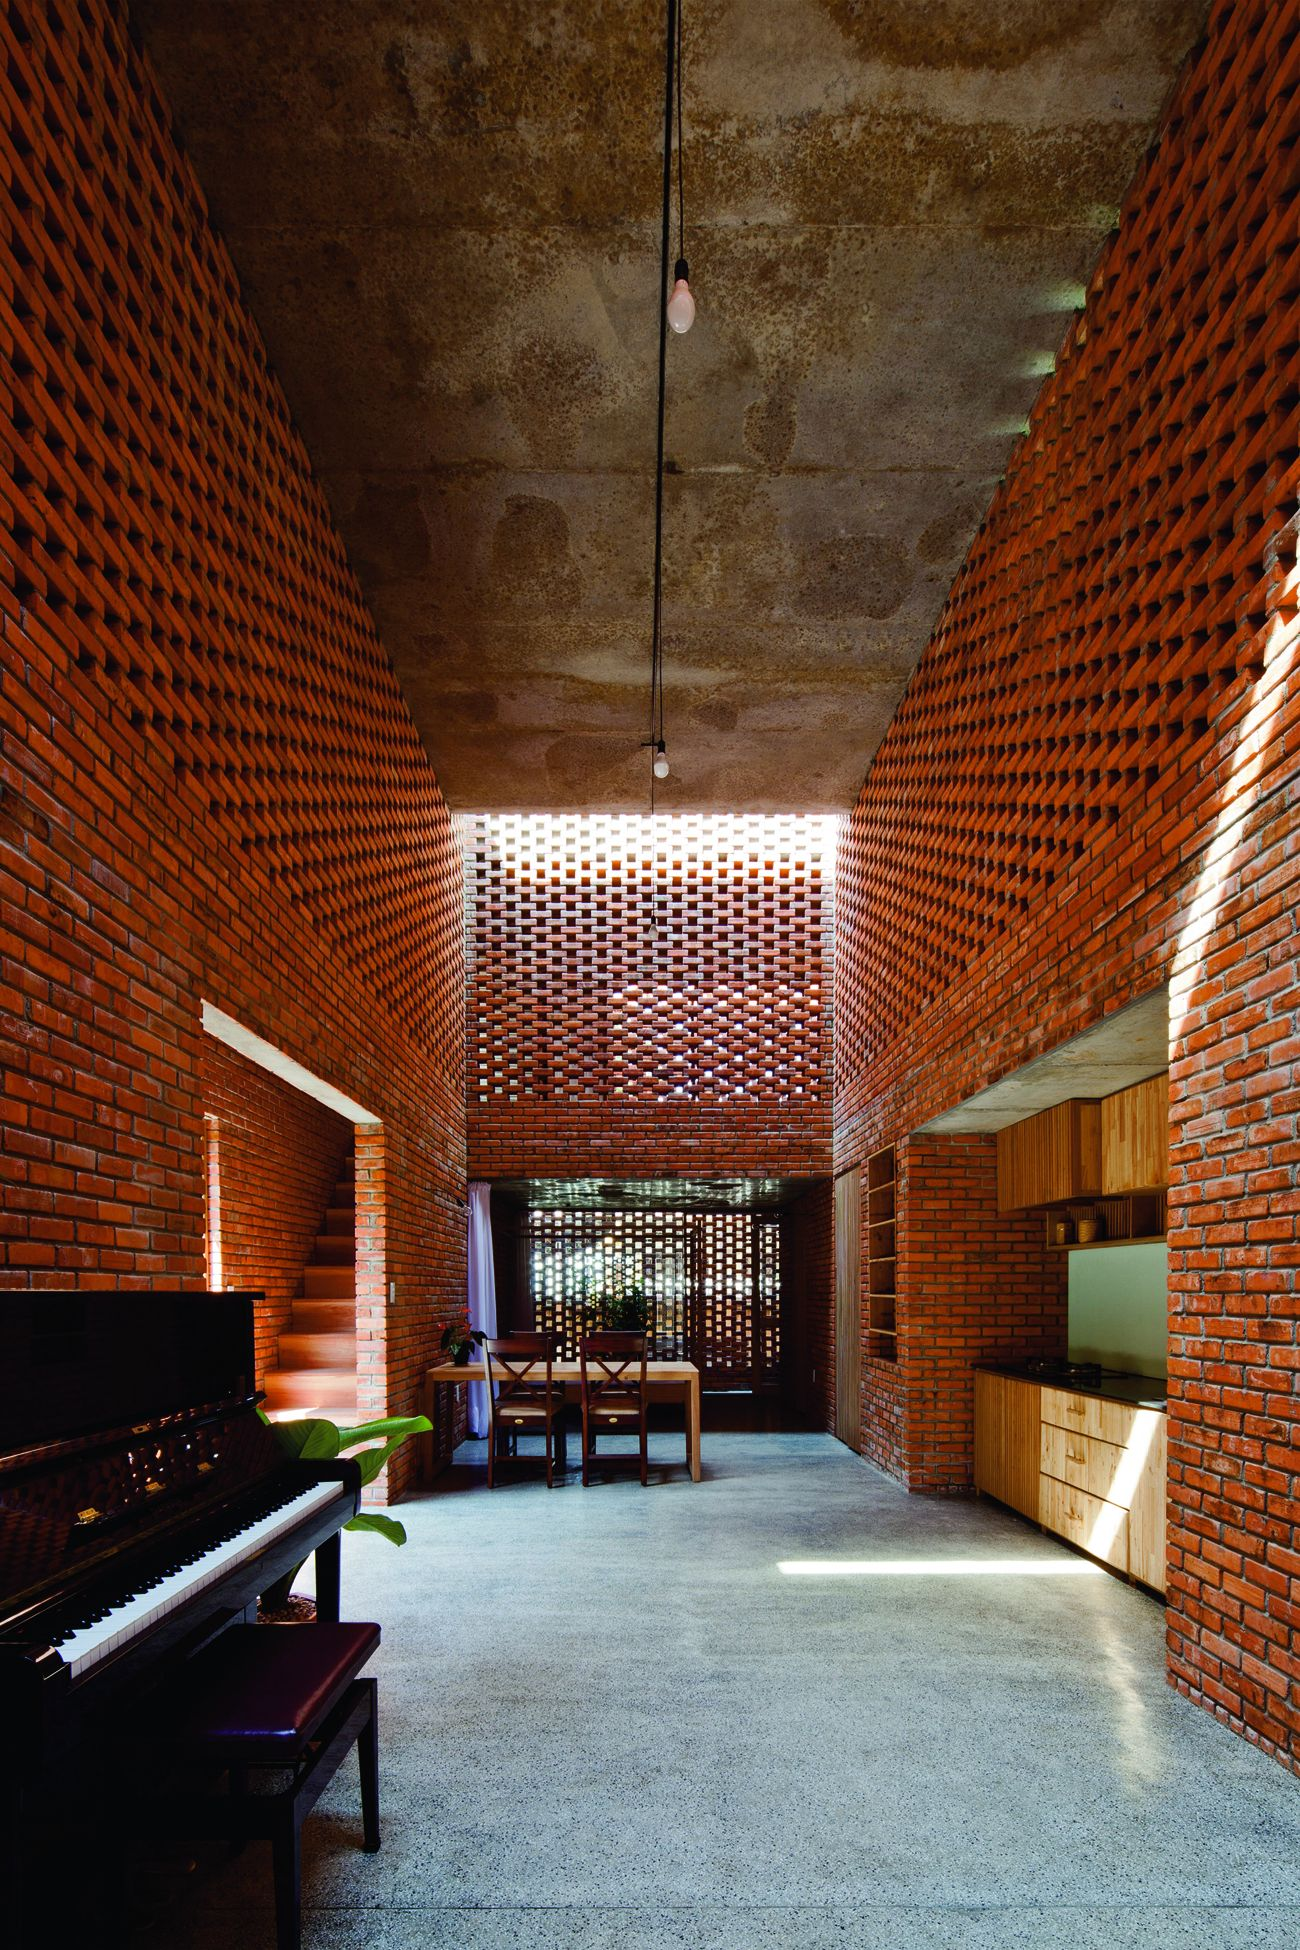 Brick Award_brique_terre cuite_Termitary House_Tropical Space